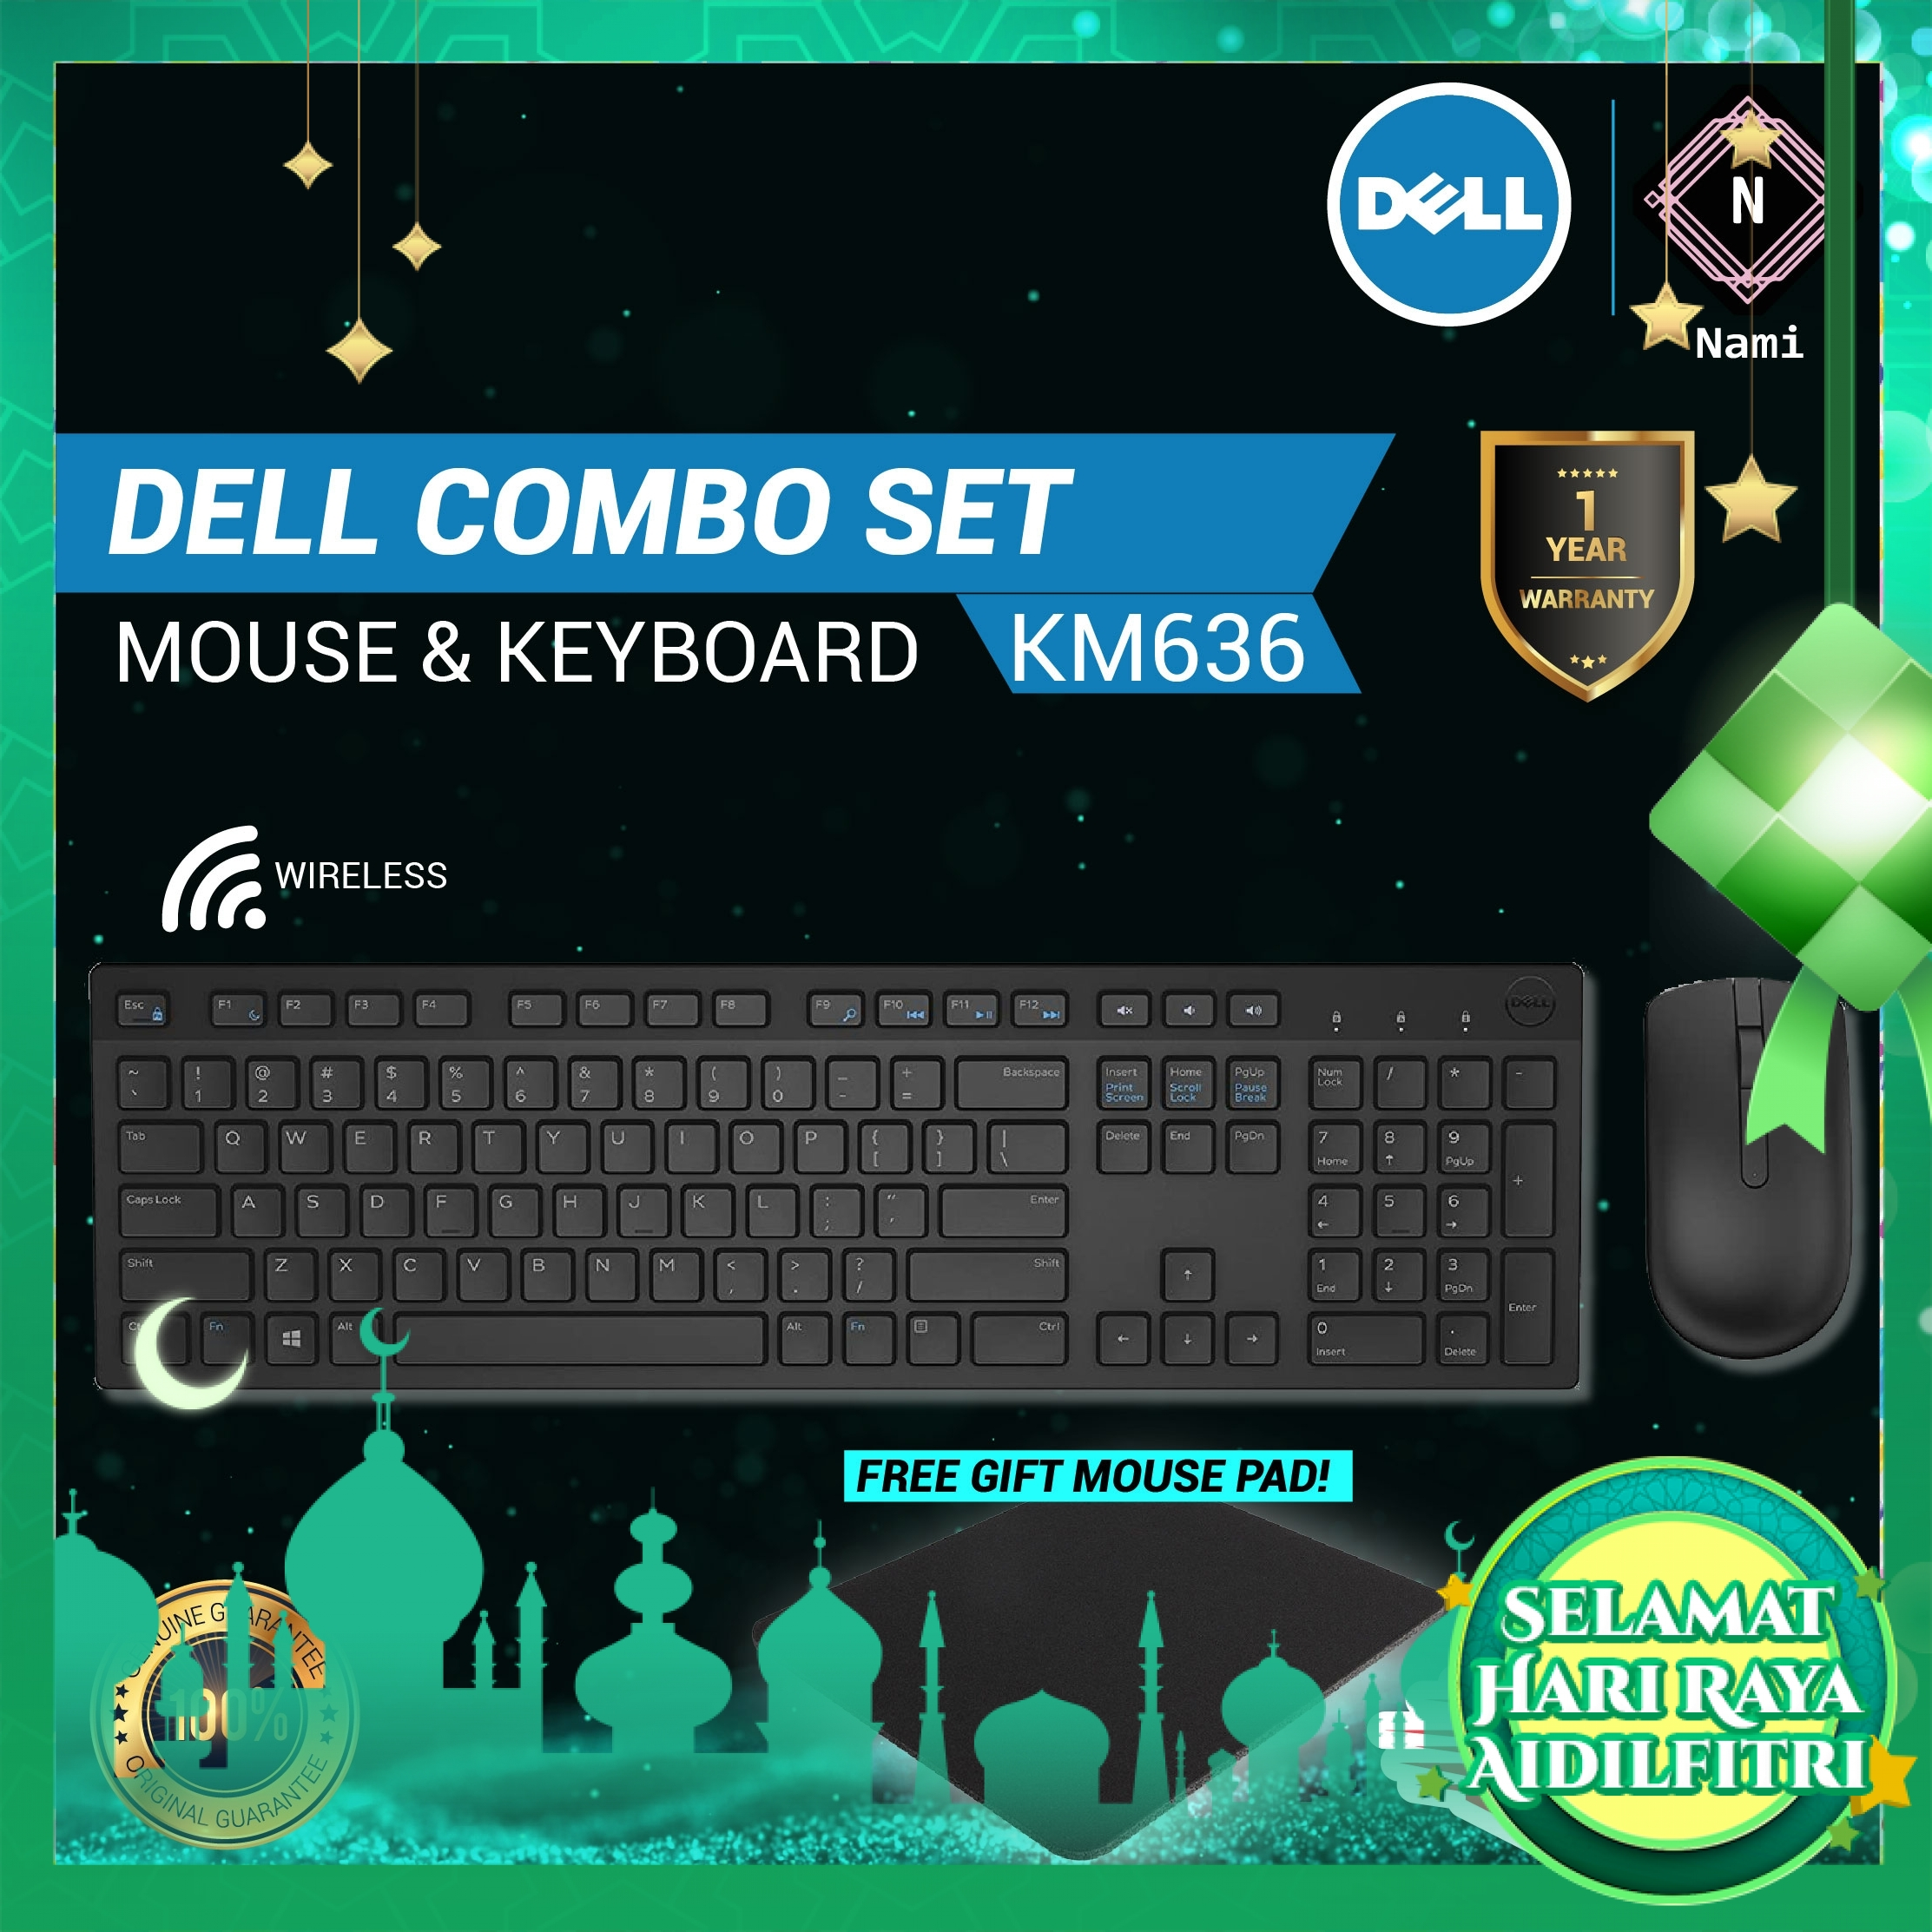 Original Dell Wireless Keyboard and Mouse - KM636 (Double Bubble Wrap Packing)